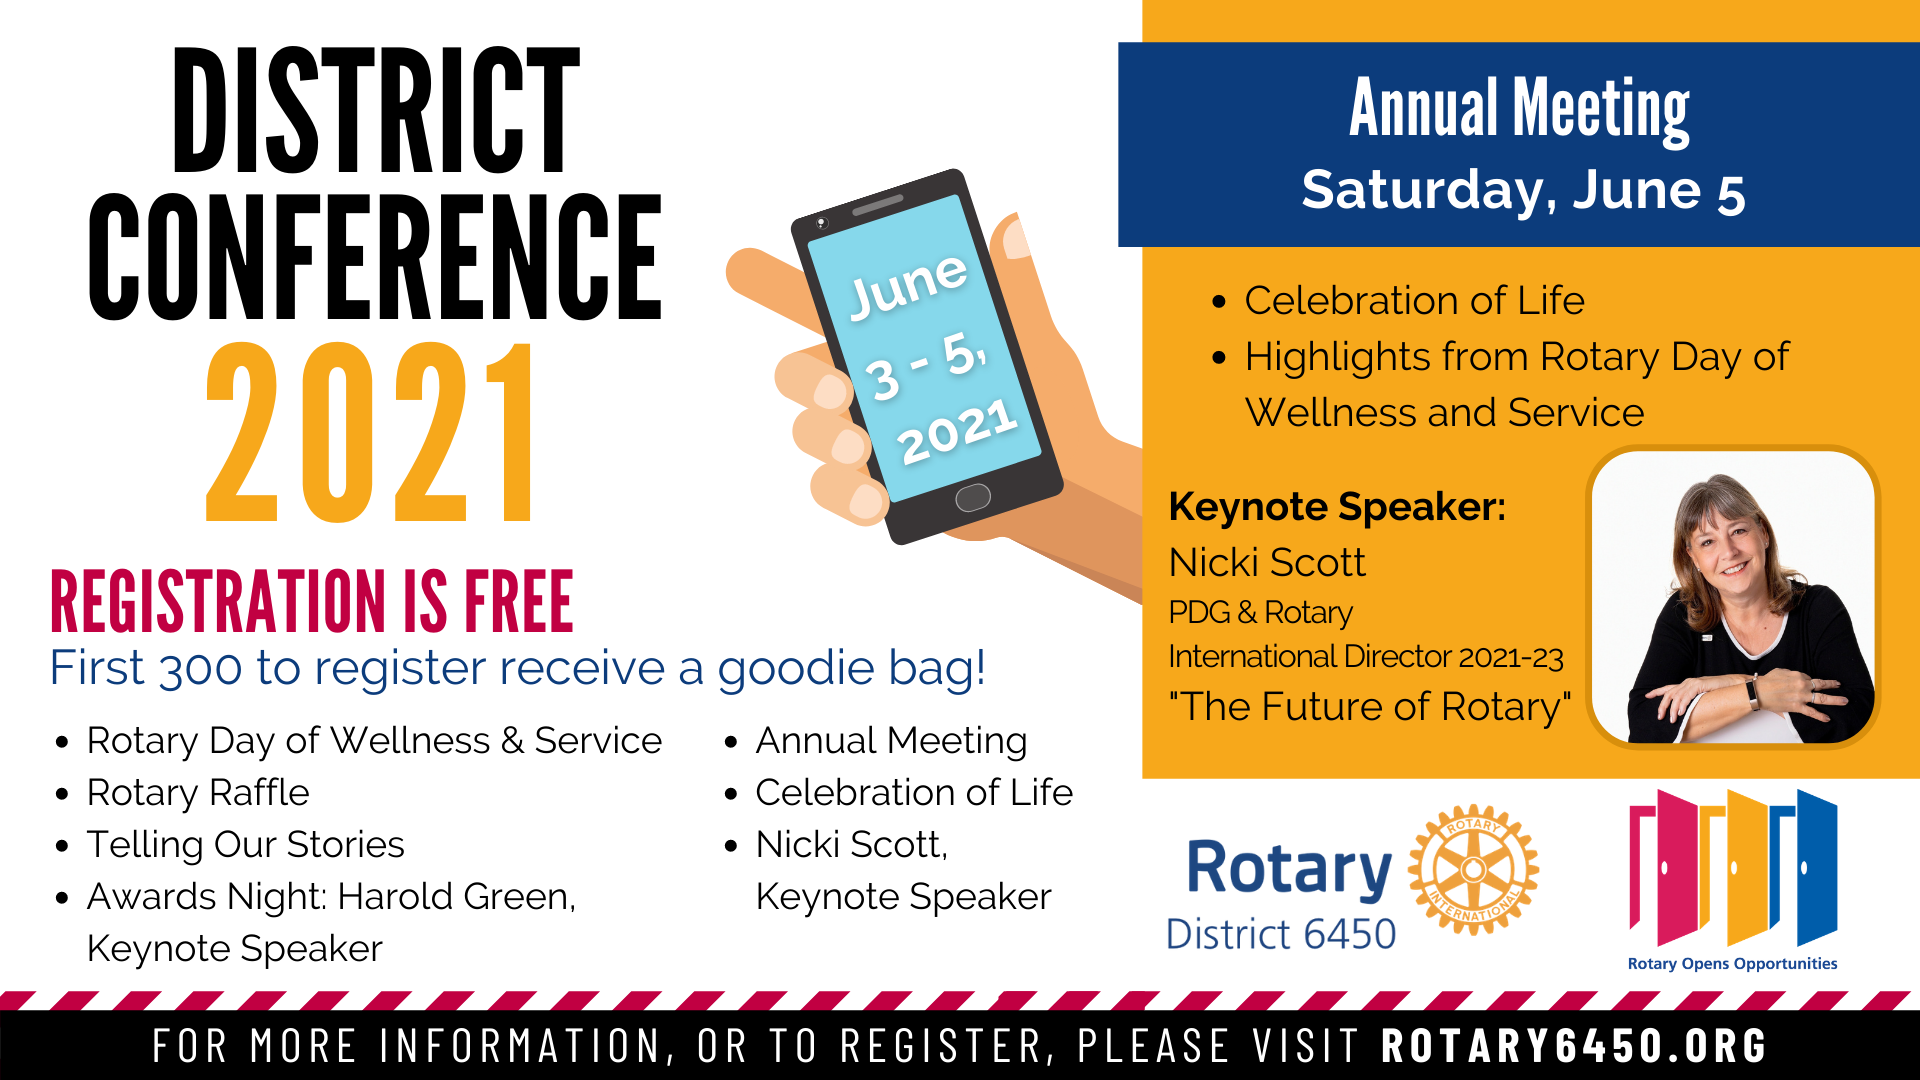 2021 District Conference Annual Meeting